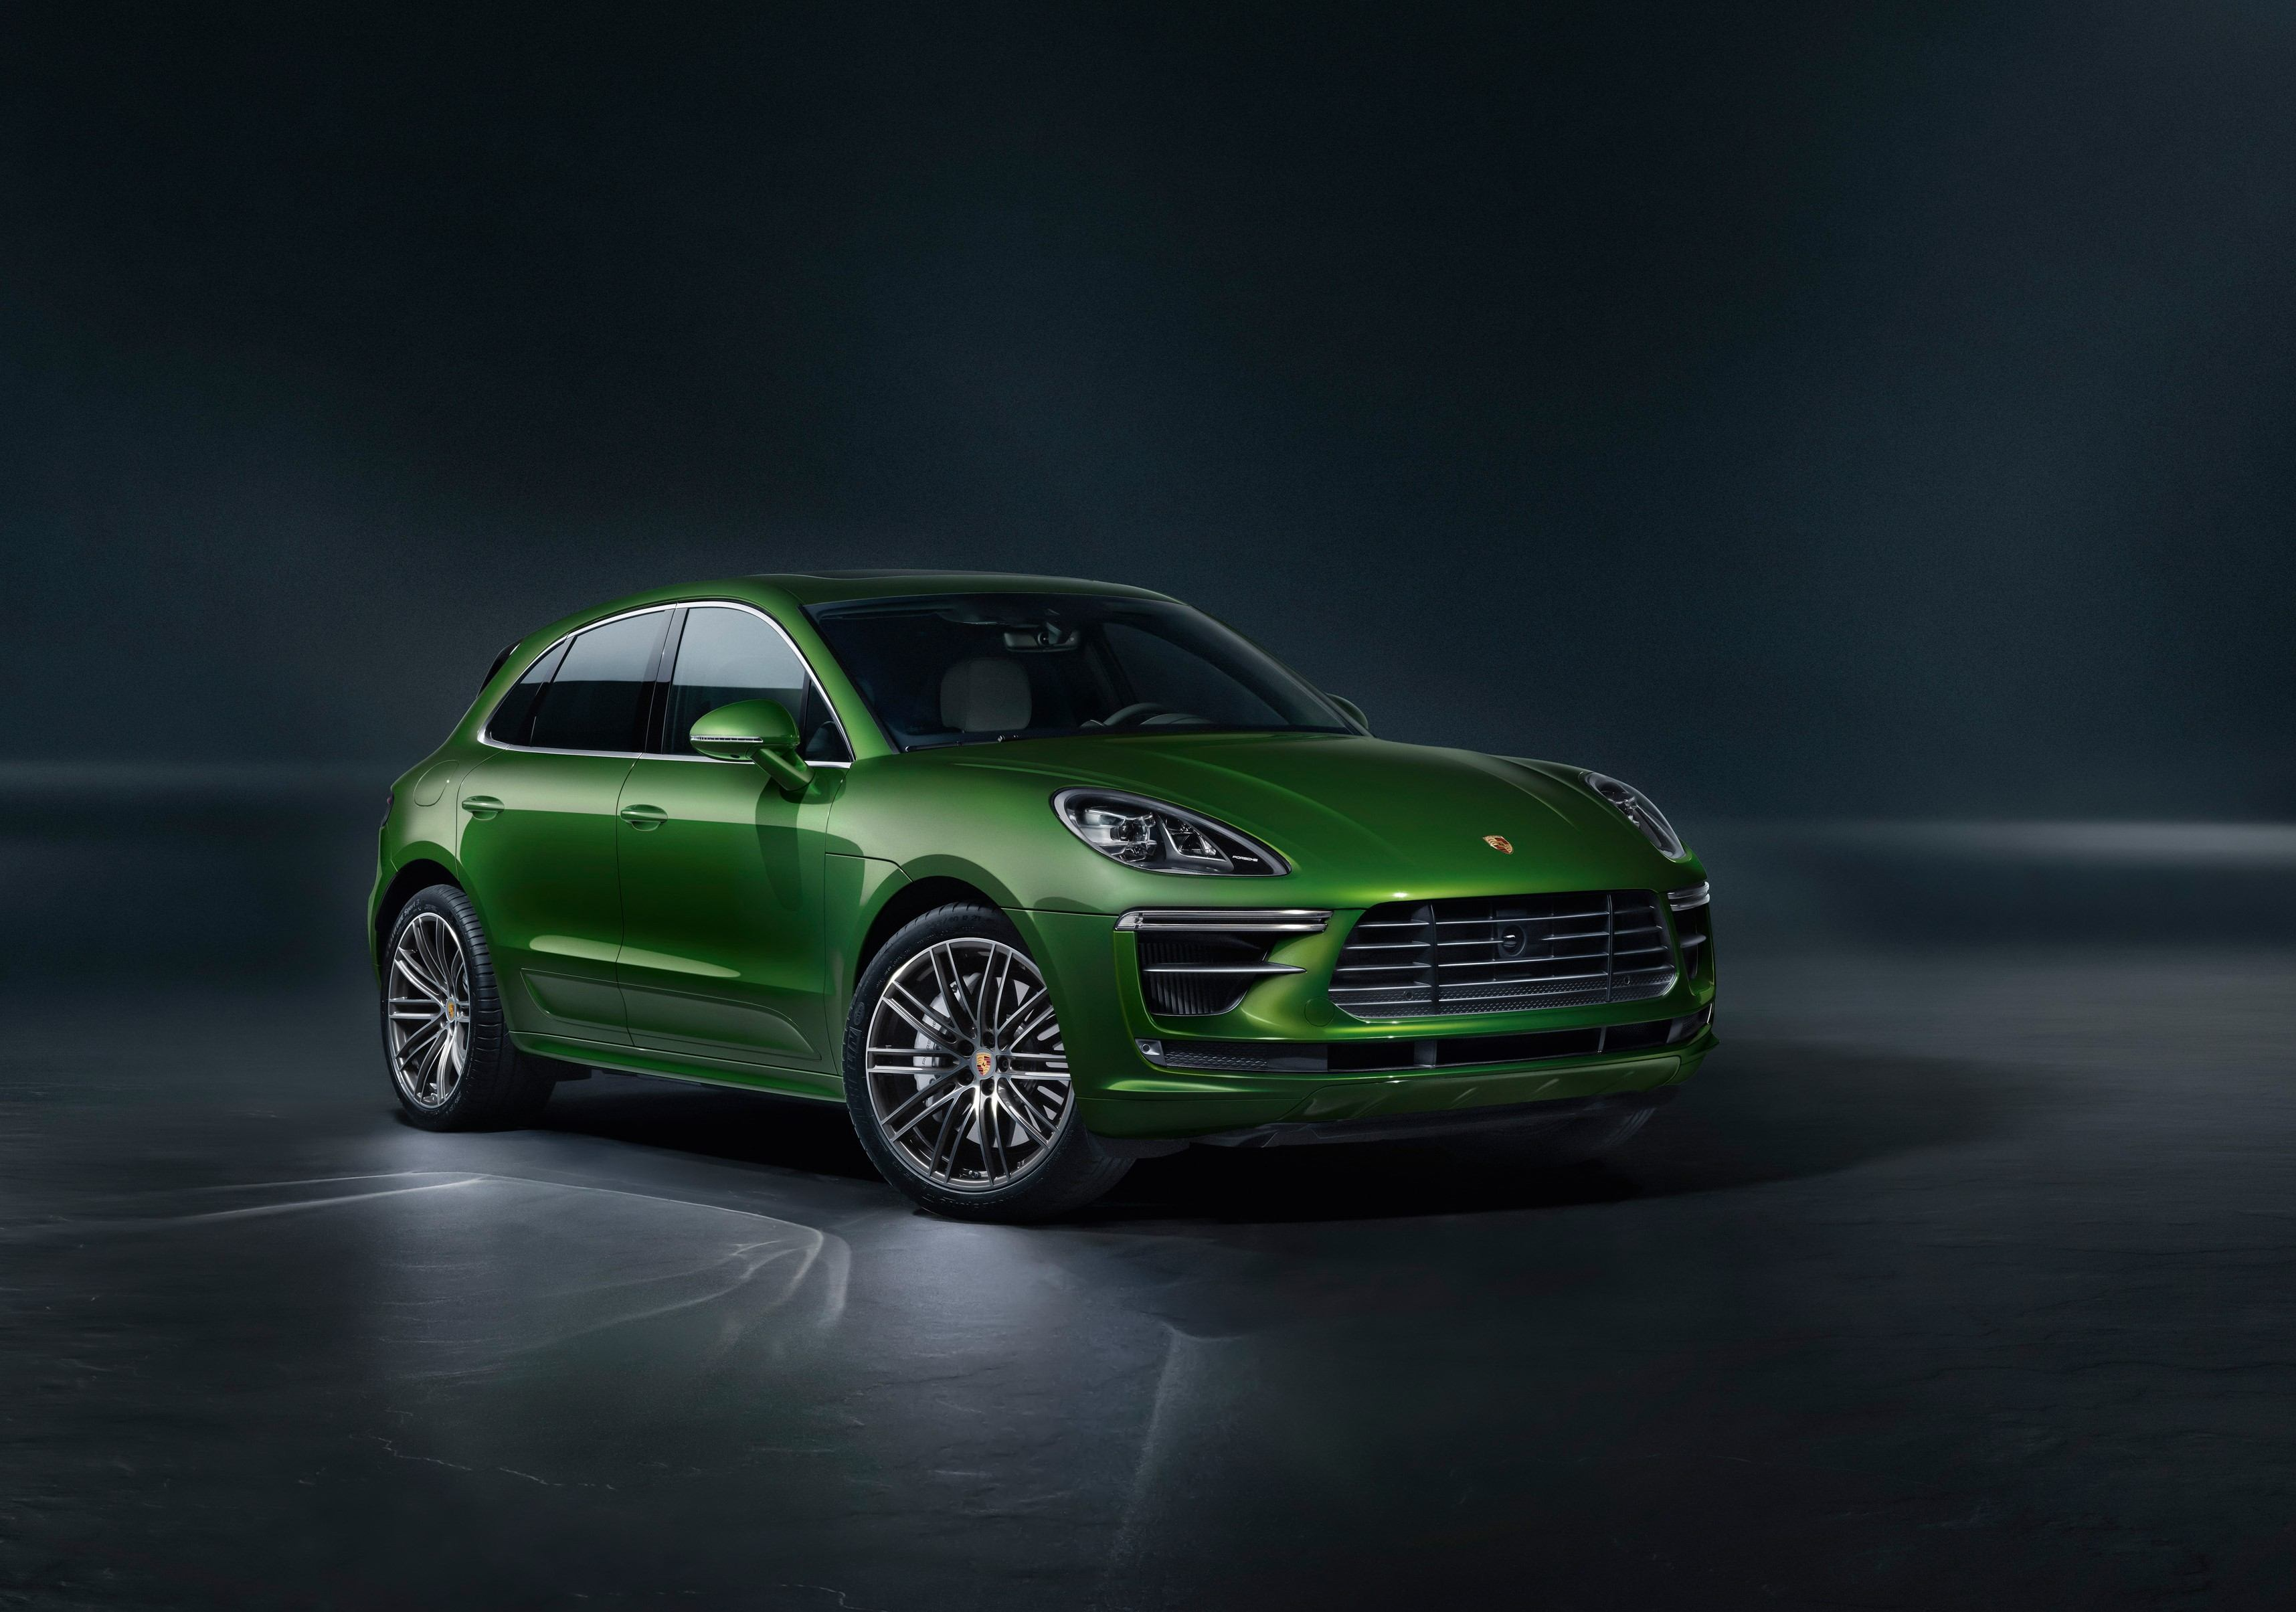 Porsche Macan Turbo Grows Even Hotter for 2020, Just in Time for It All to End - The Truth About Cars